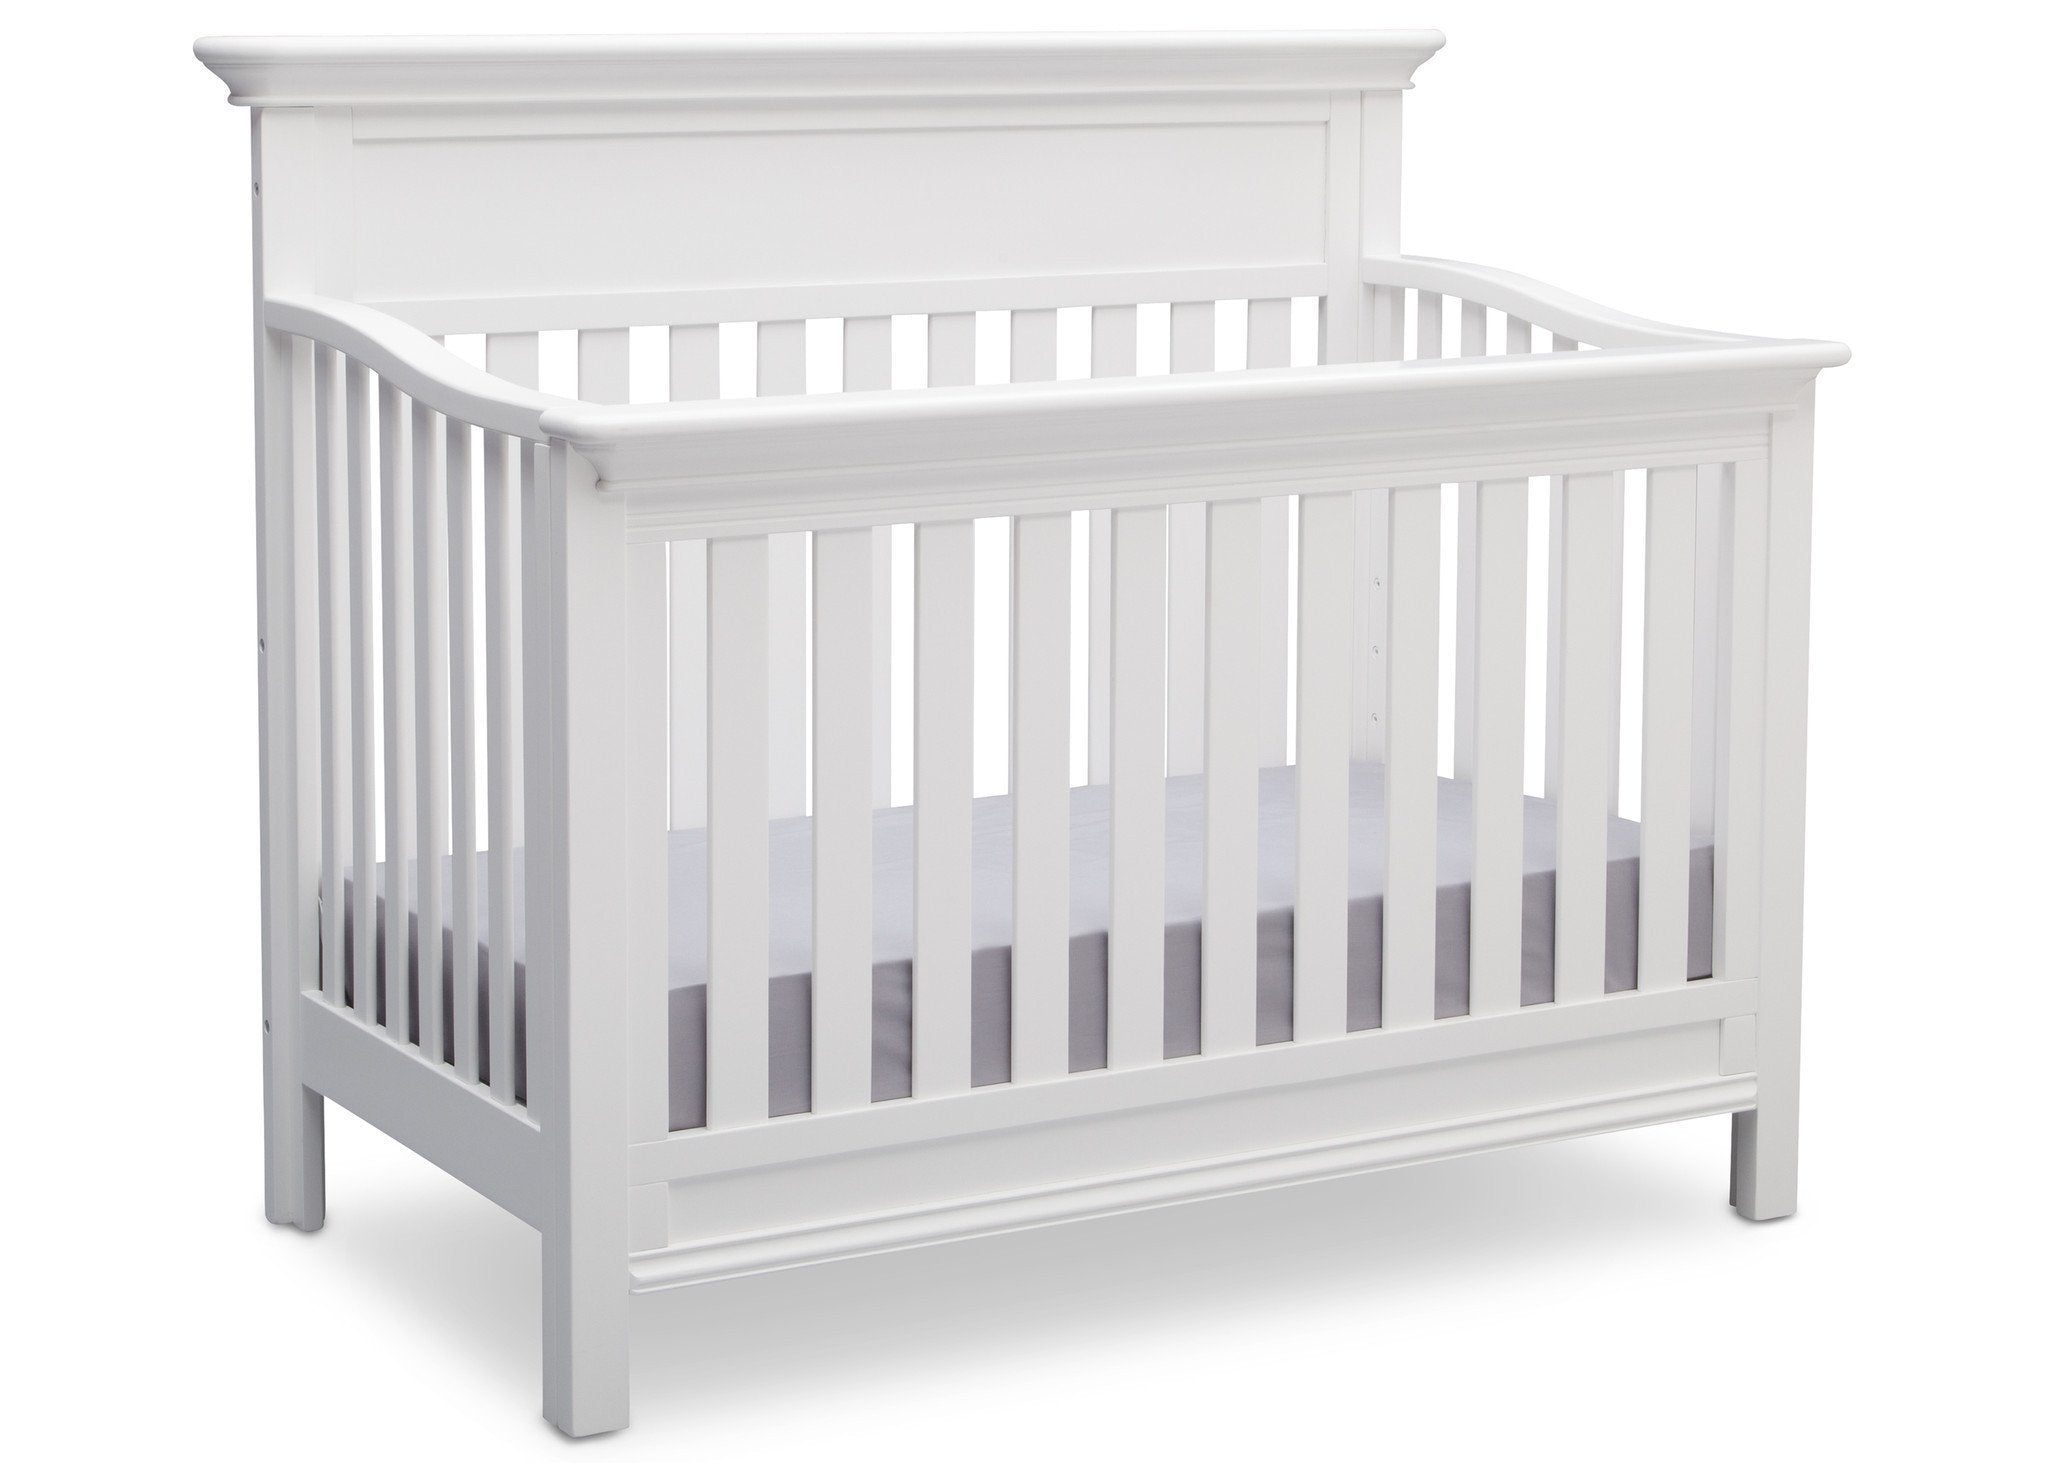 Serta Bianca (130) Fernwood 4-in-1 Crib, Side View with Crib Conversion a4a